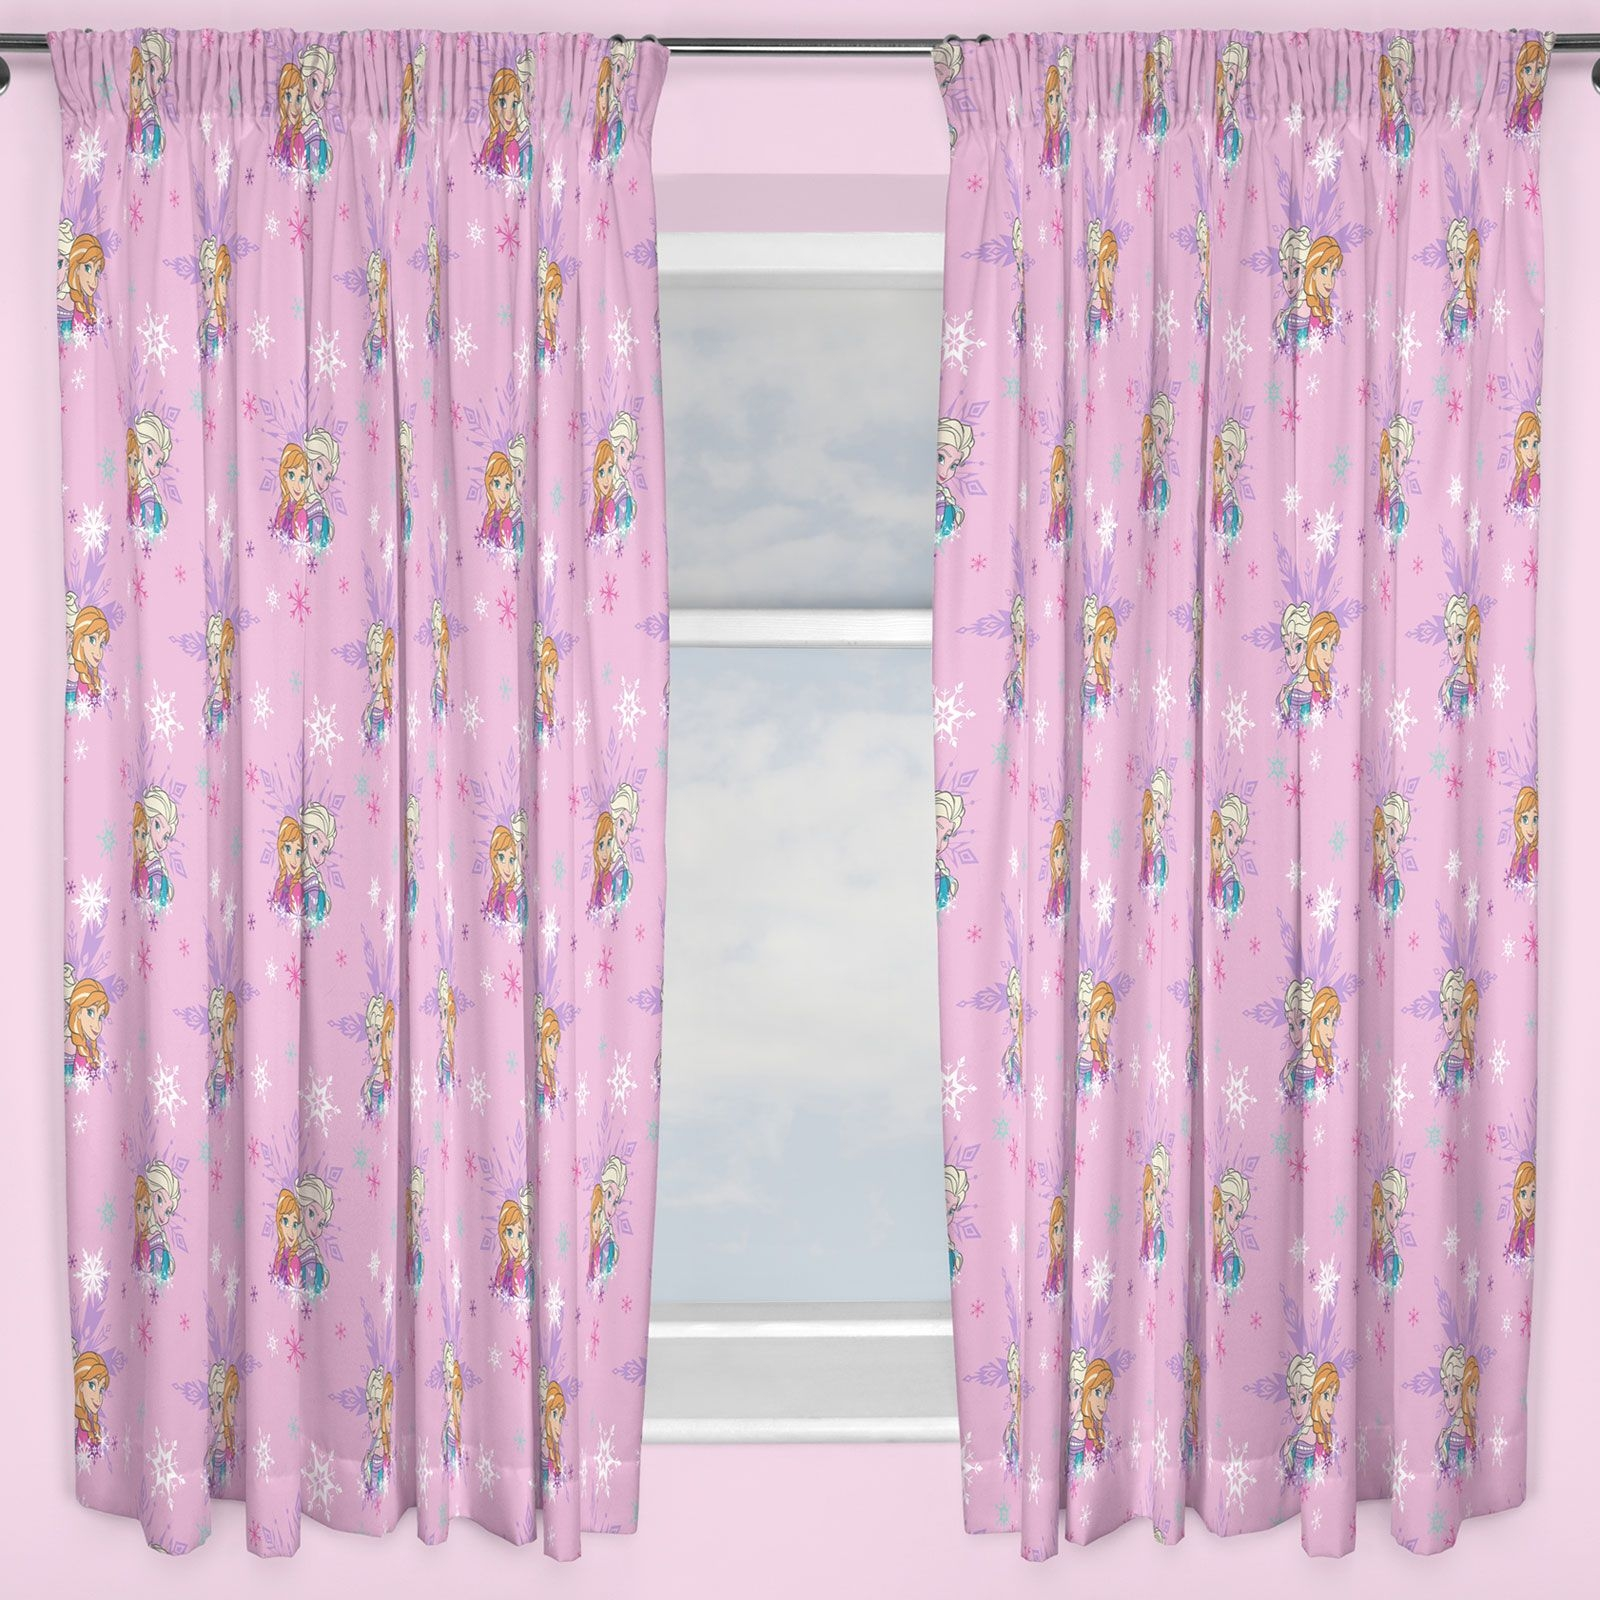 Kids Disney And Character Curtains 54 72 Inch Drop Childrens In 100 Inch Drop Curtains (Image 12 of 15)